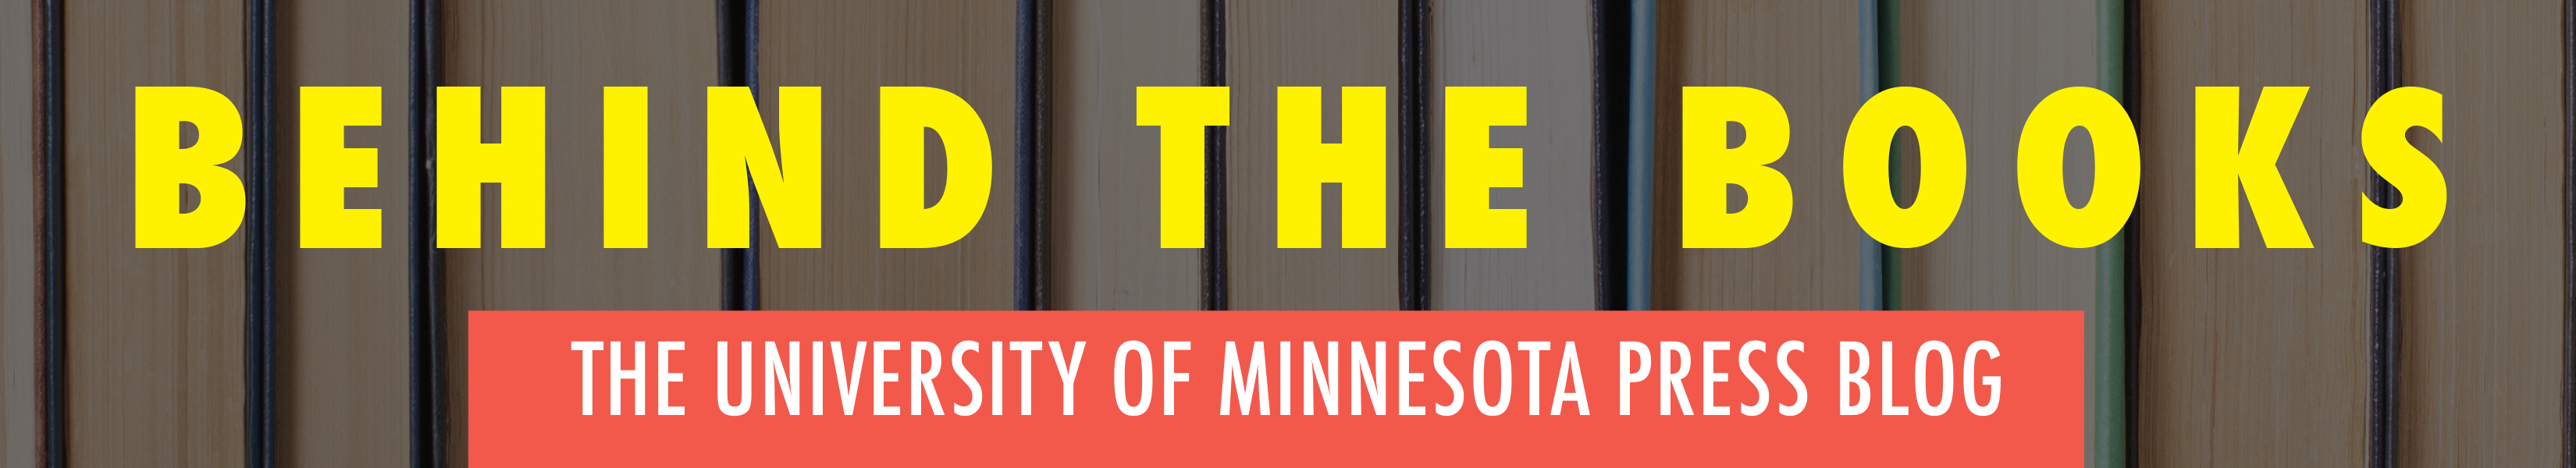 The University of Minnesota Press Blog